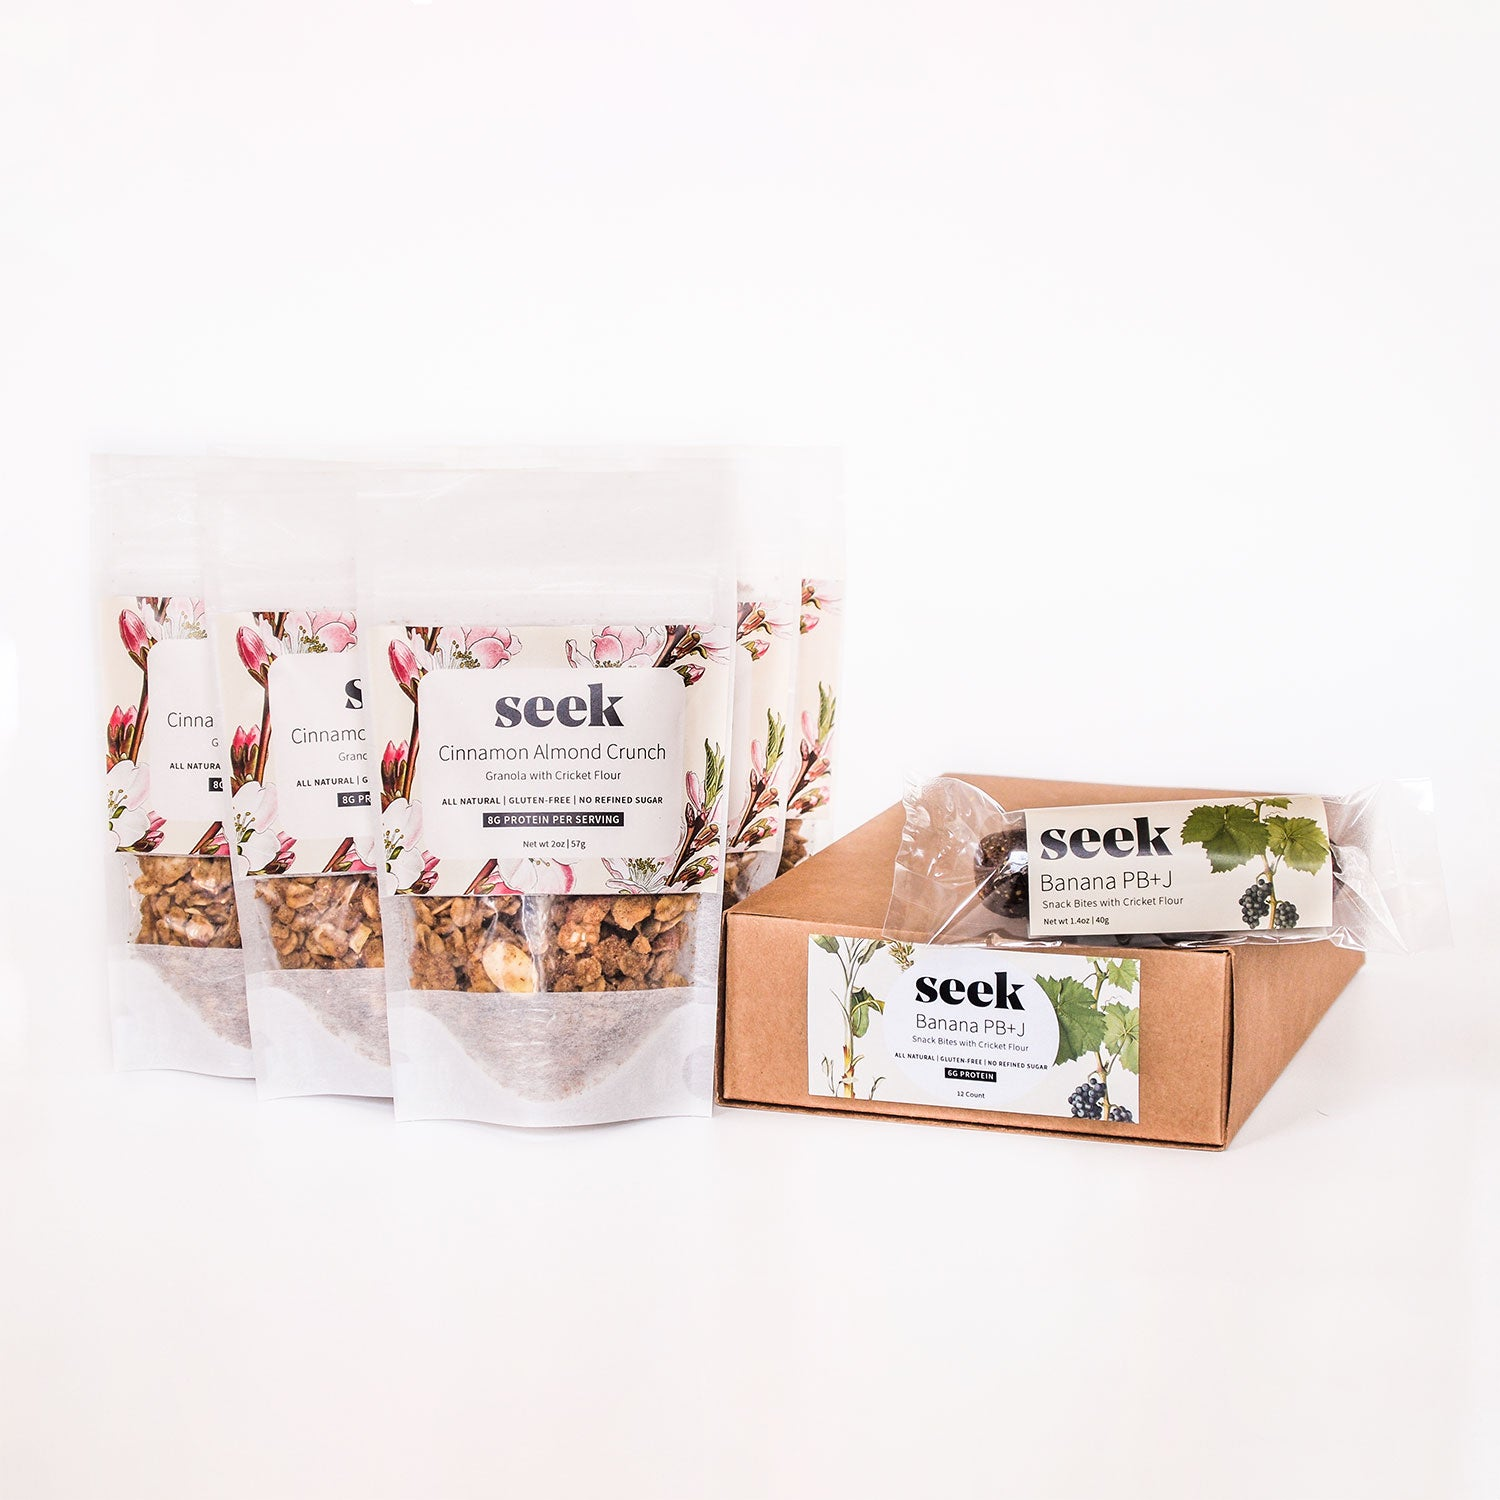 Cricket Protein On-The-Go Pack,  - Seek Food